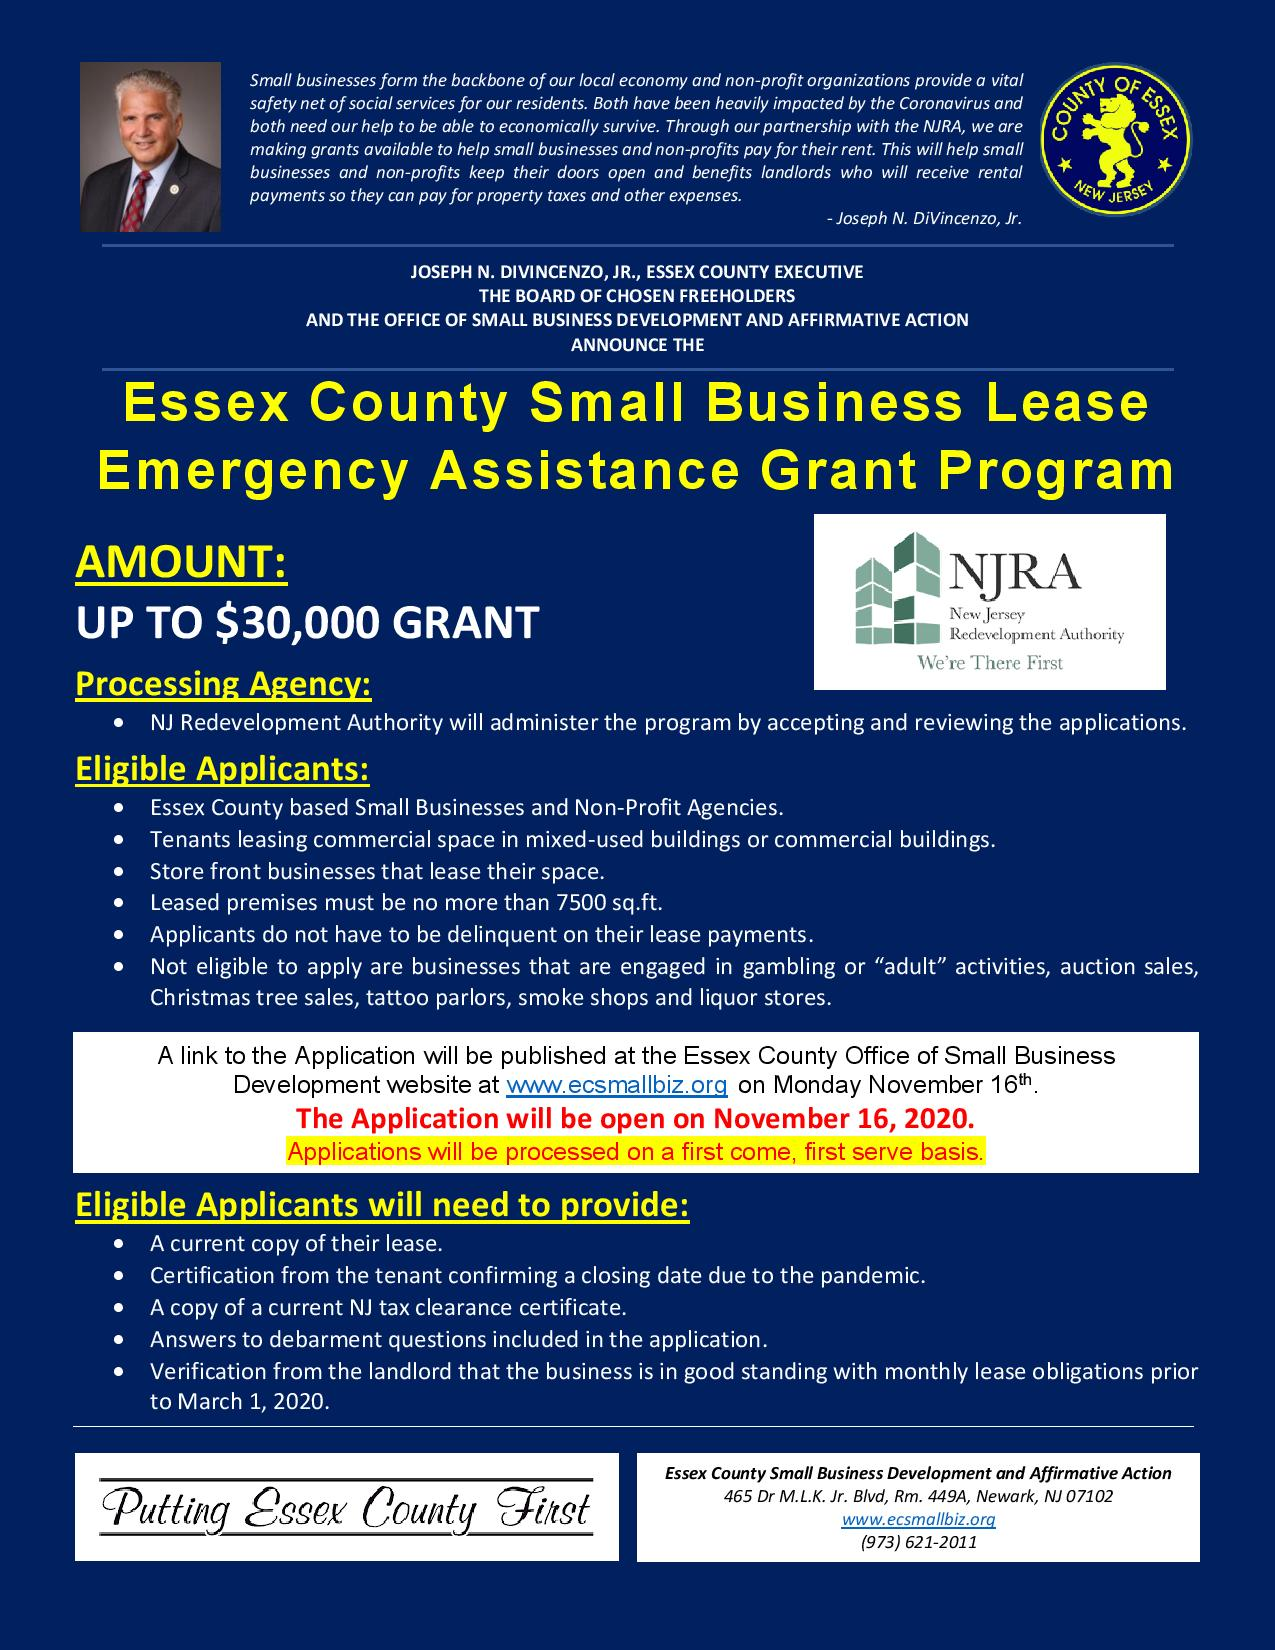 Essex-County-Small-Business-Lease-Emergency-Assistance-Grant-NJRA